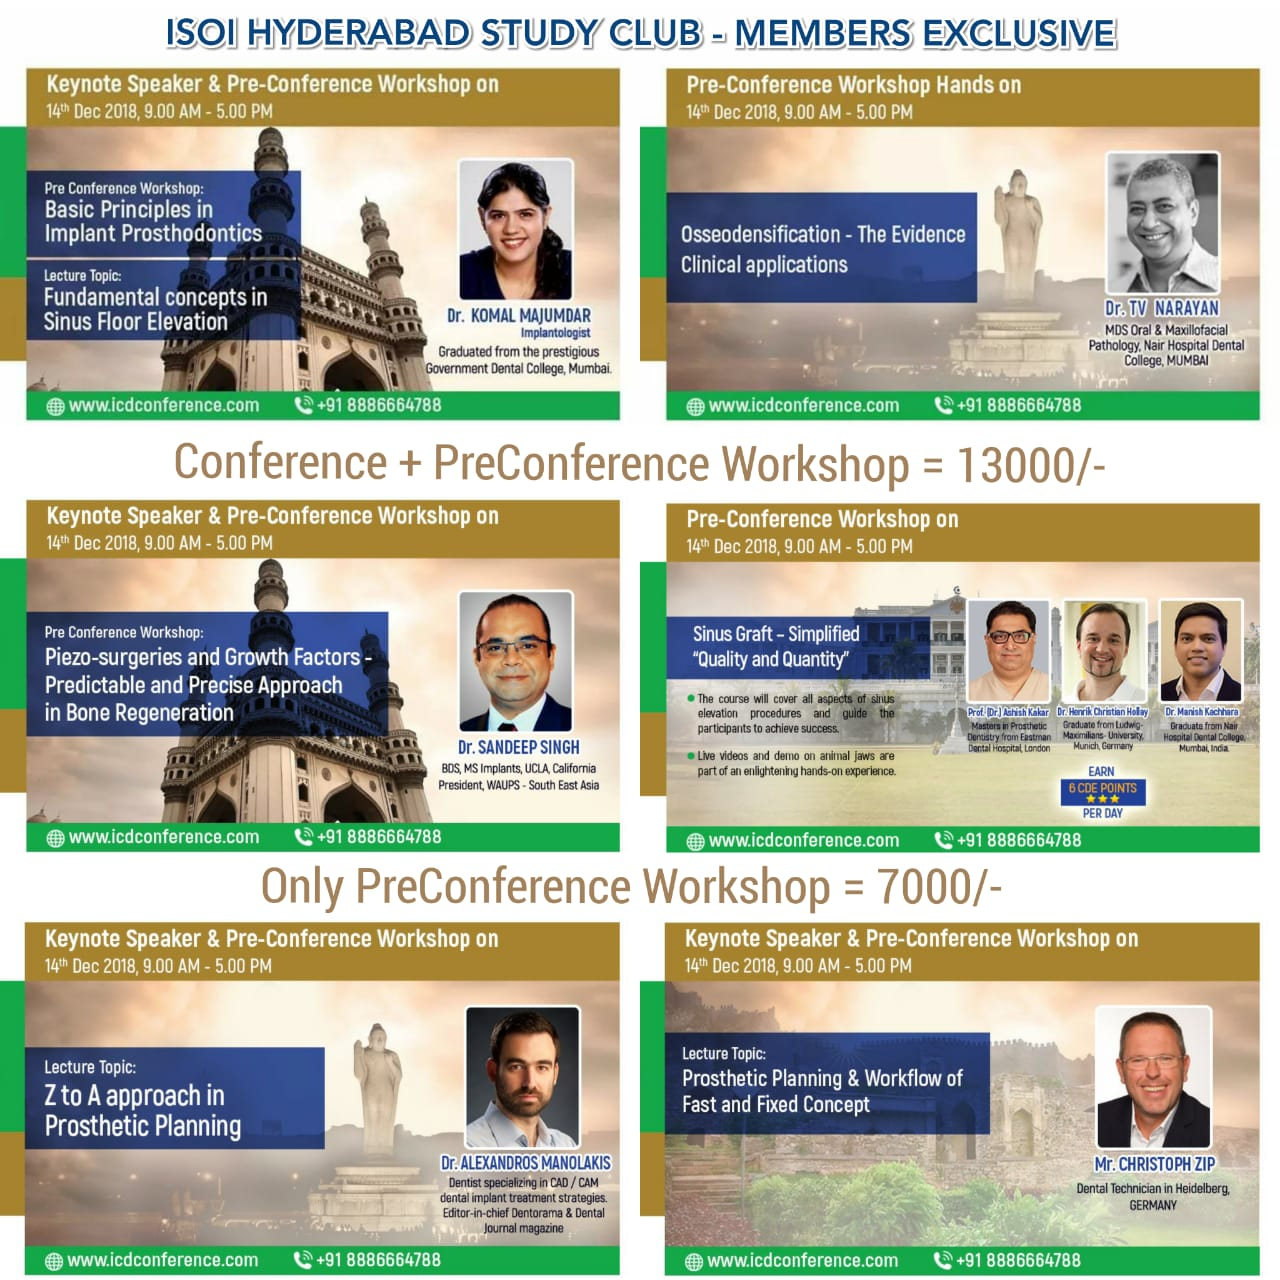 ICD Conference(International College of Dentists conference) Tickets by  Dr Asra, 14 Dec, 2018, Hyderabad Event